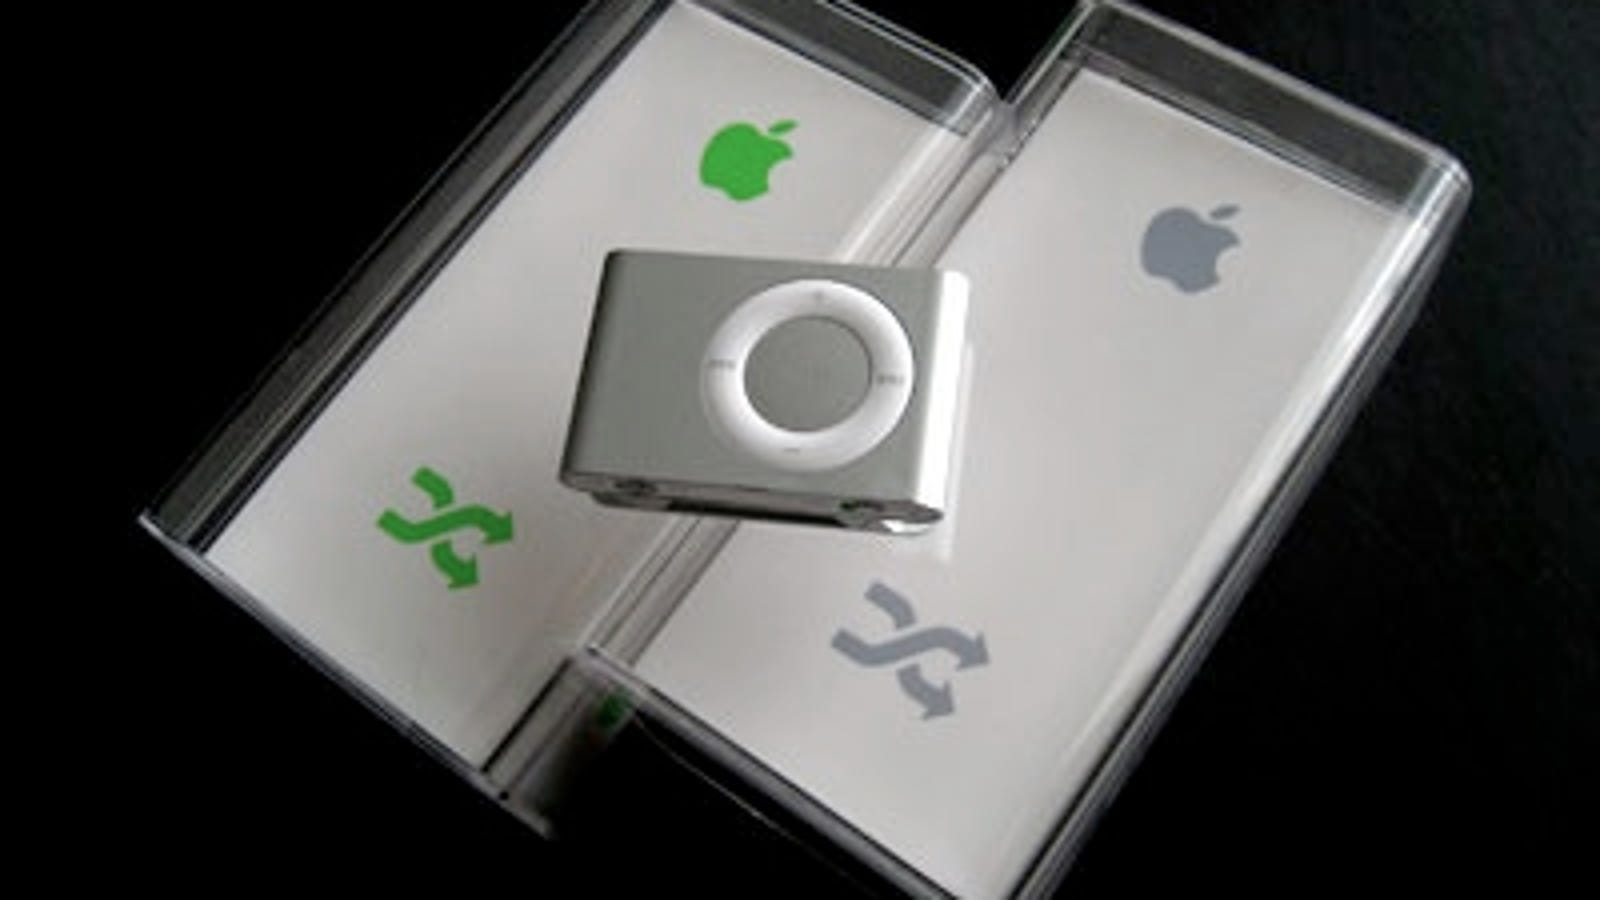 sleep earbuds noise cancelling - Get the Latest iPod shuffle Earbuds: Telling the Old Box vs. the New